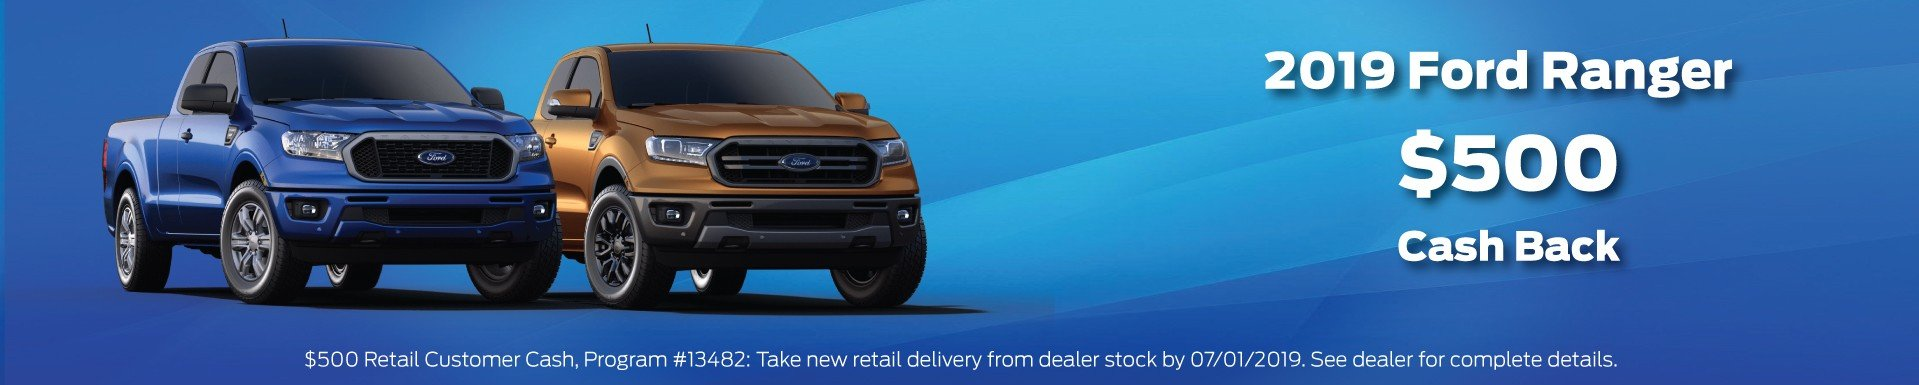 2019 Ford Ranger Offer 7-1-2019